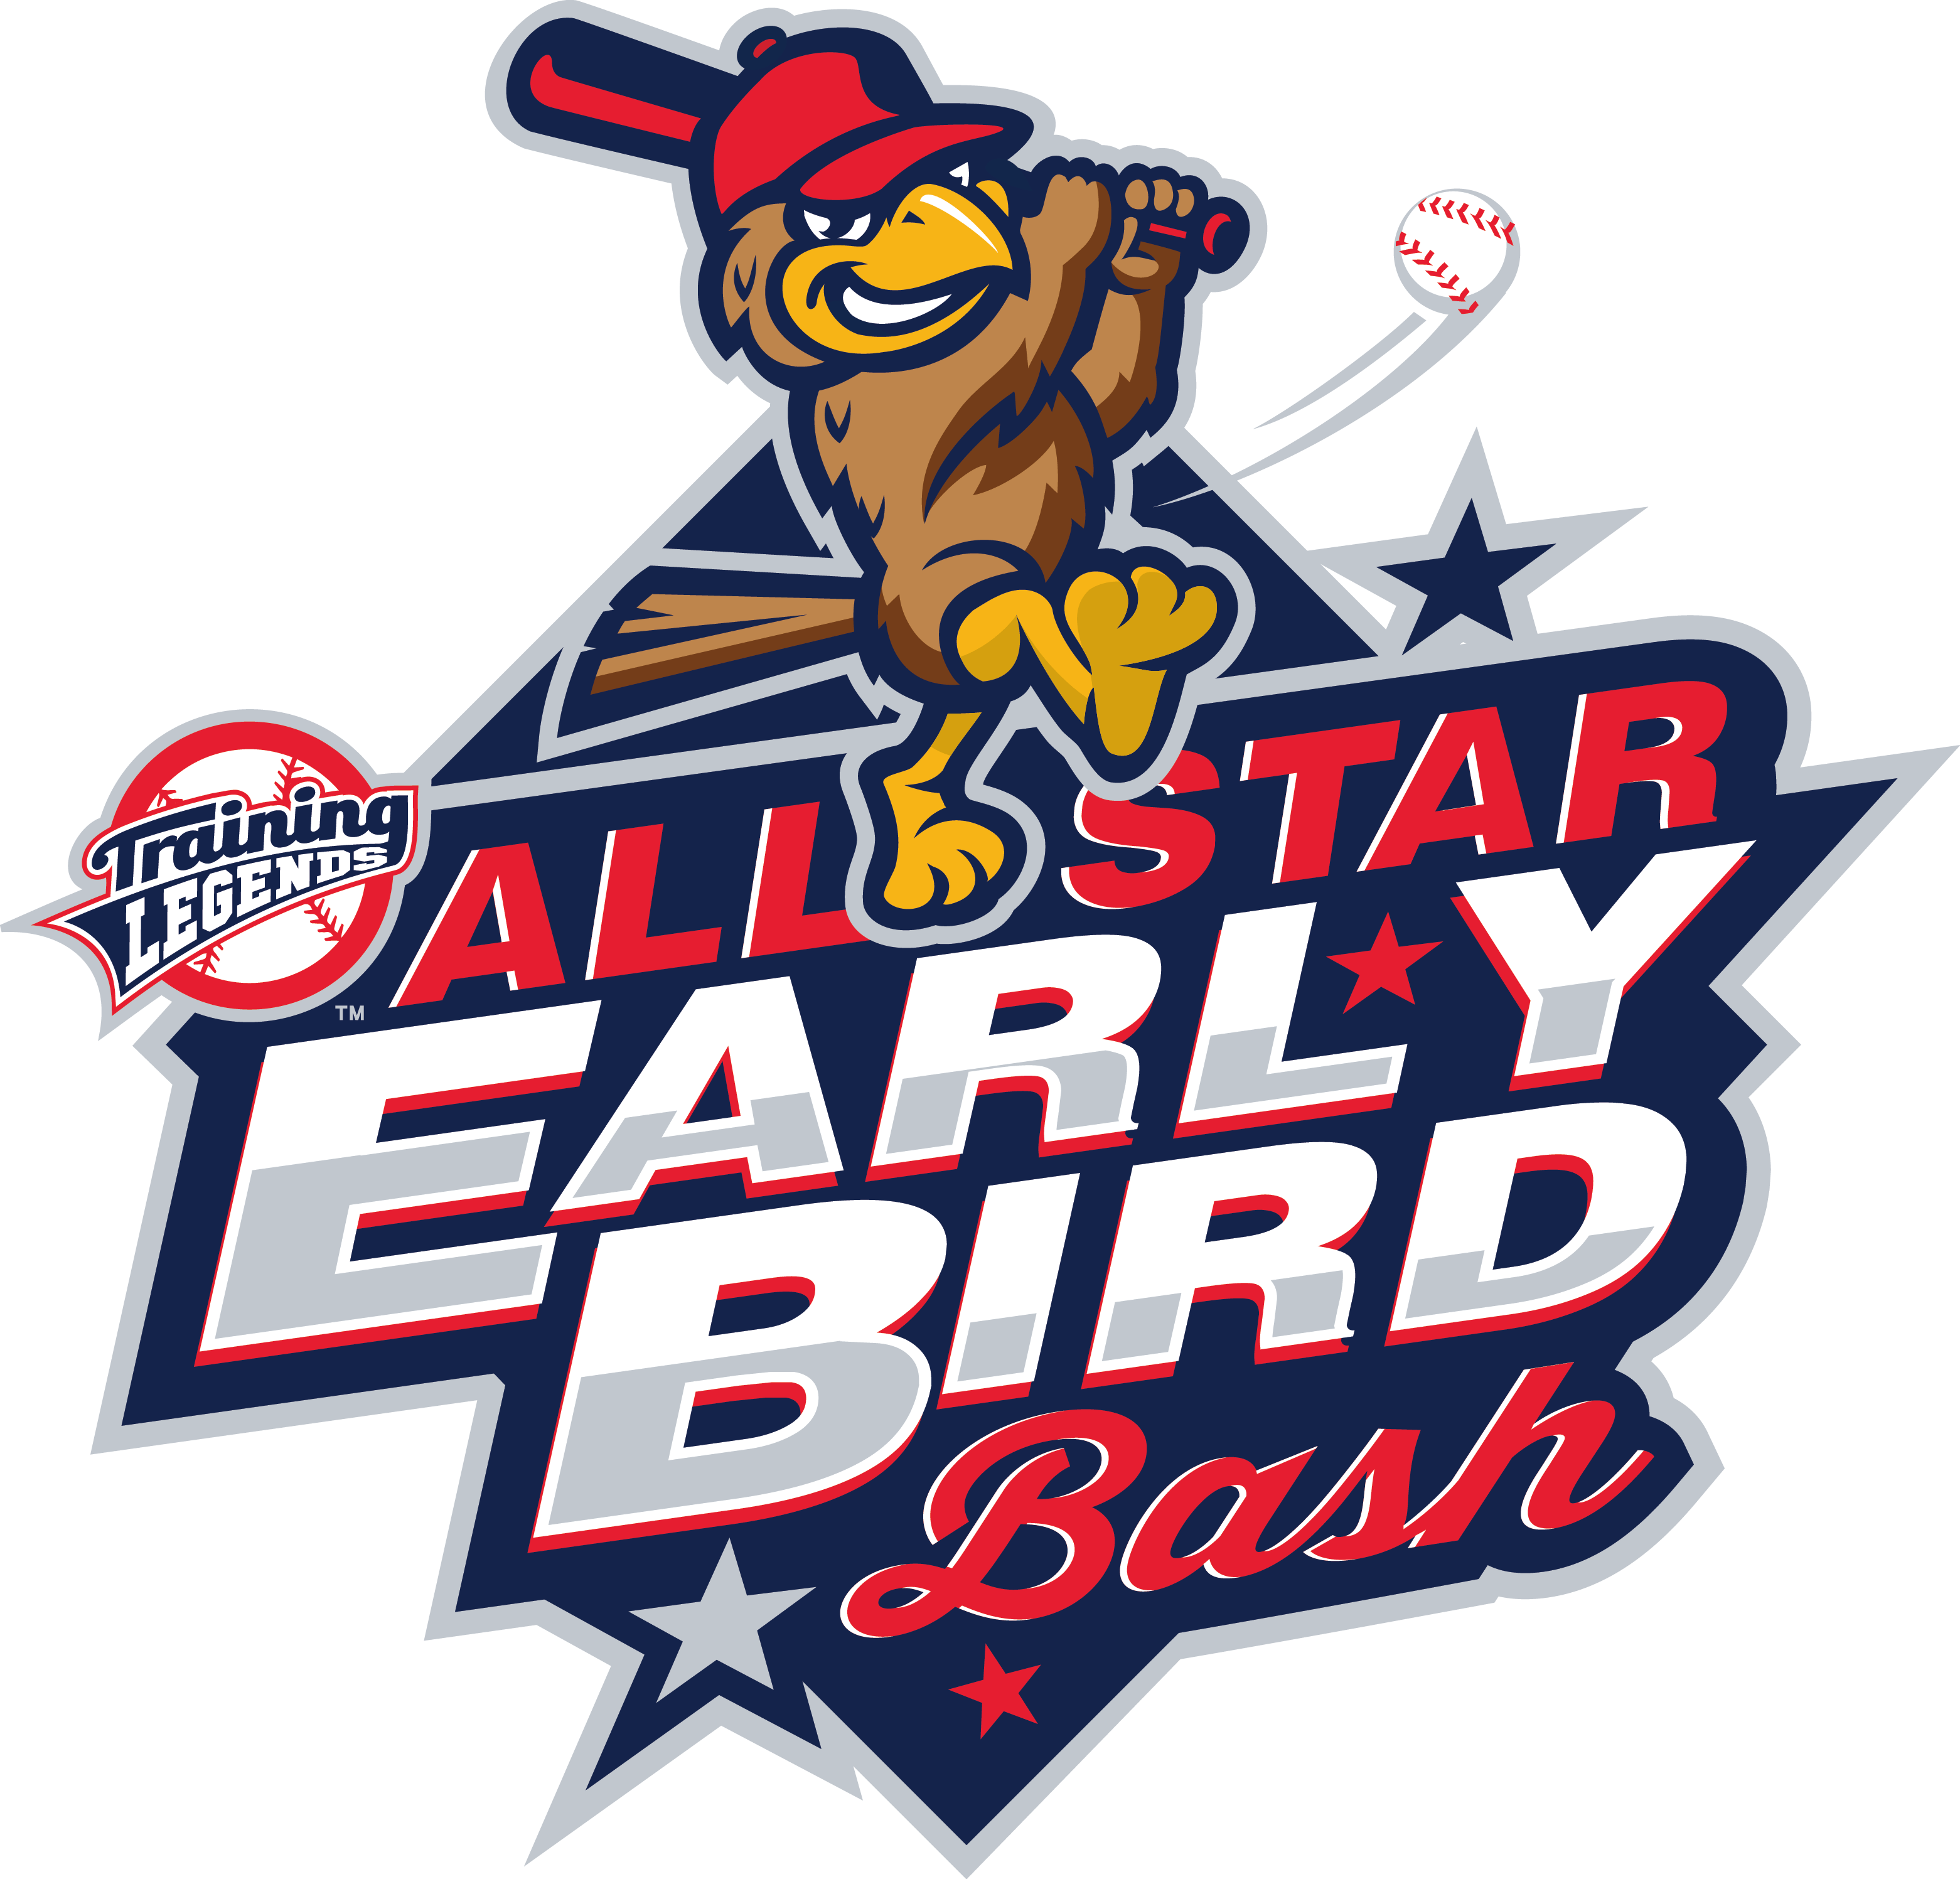 All Star Early Bird Bash